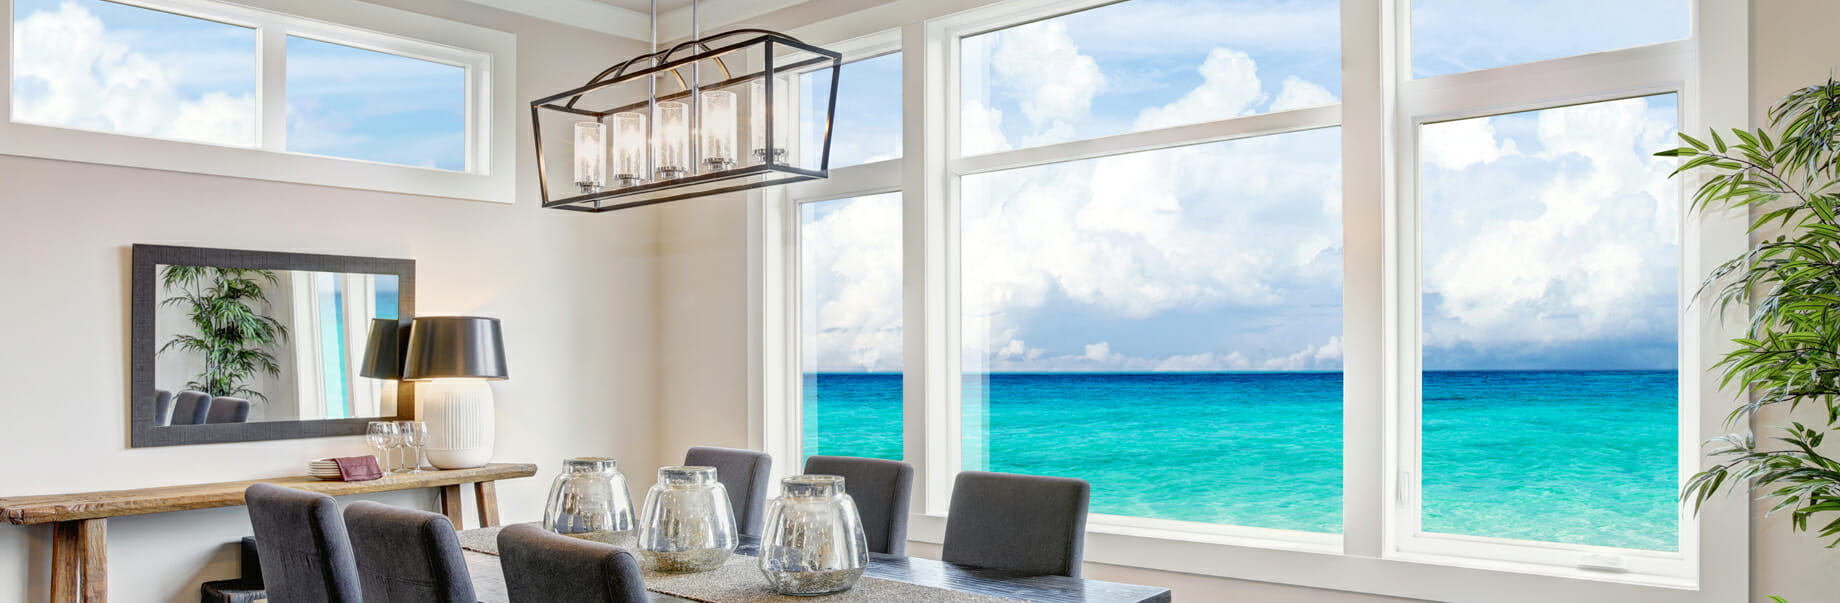 A beautiful kitchen with a gorgeous view of the ocean through impressive looking windows.